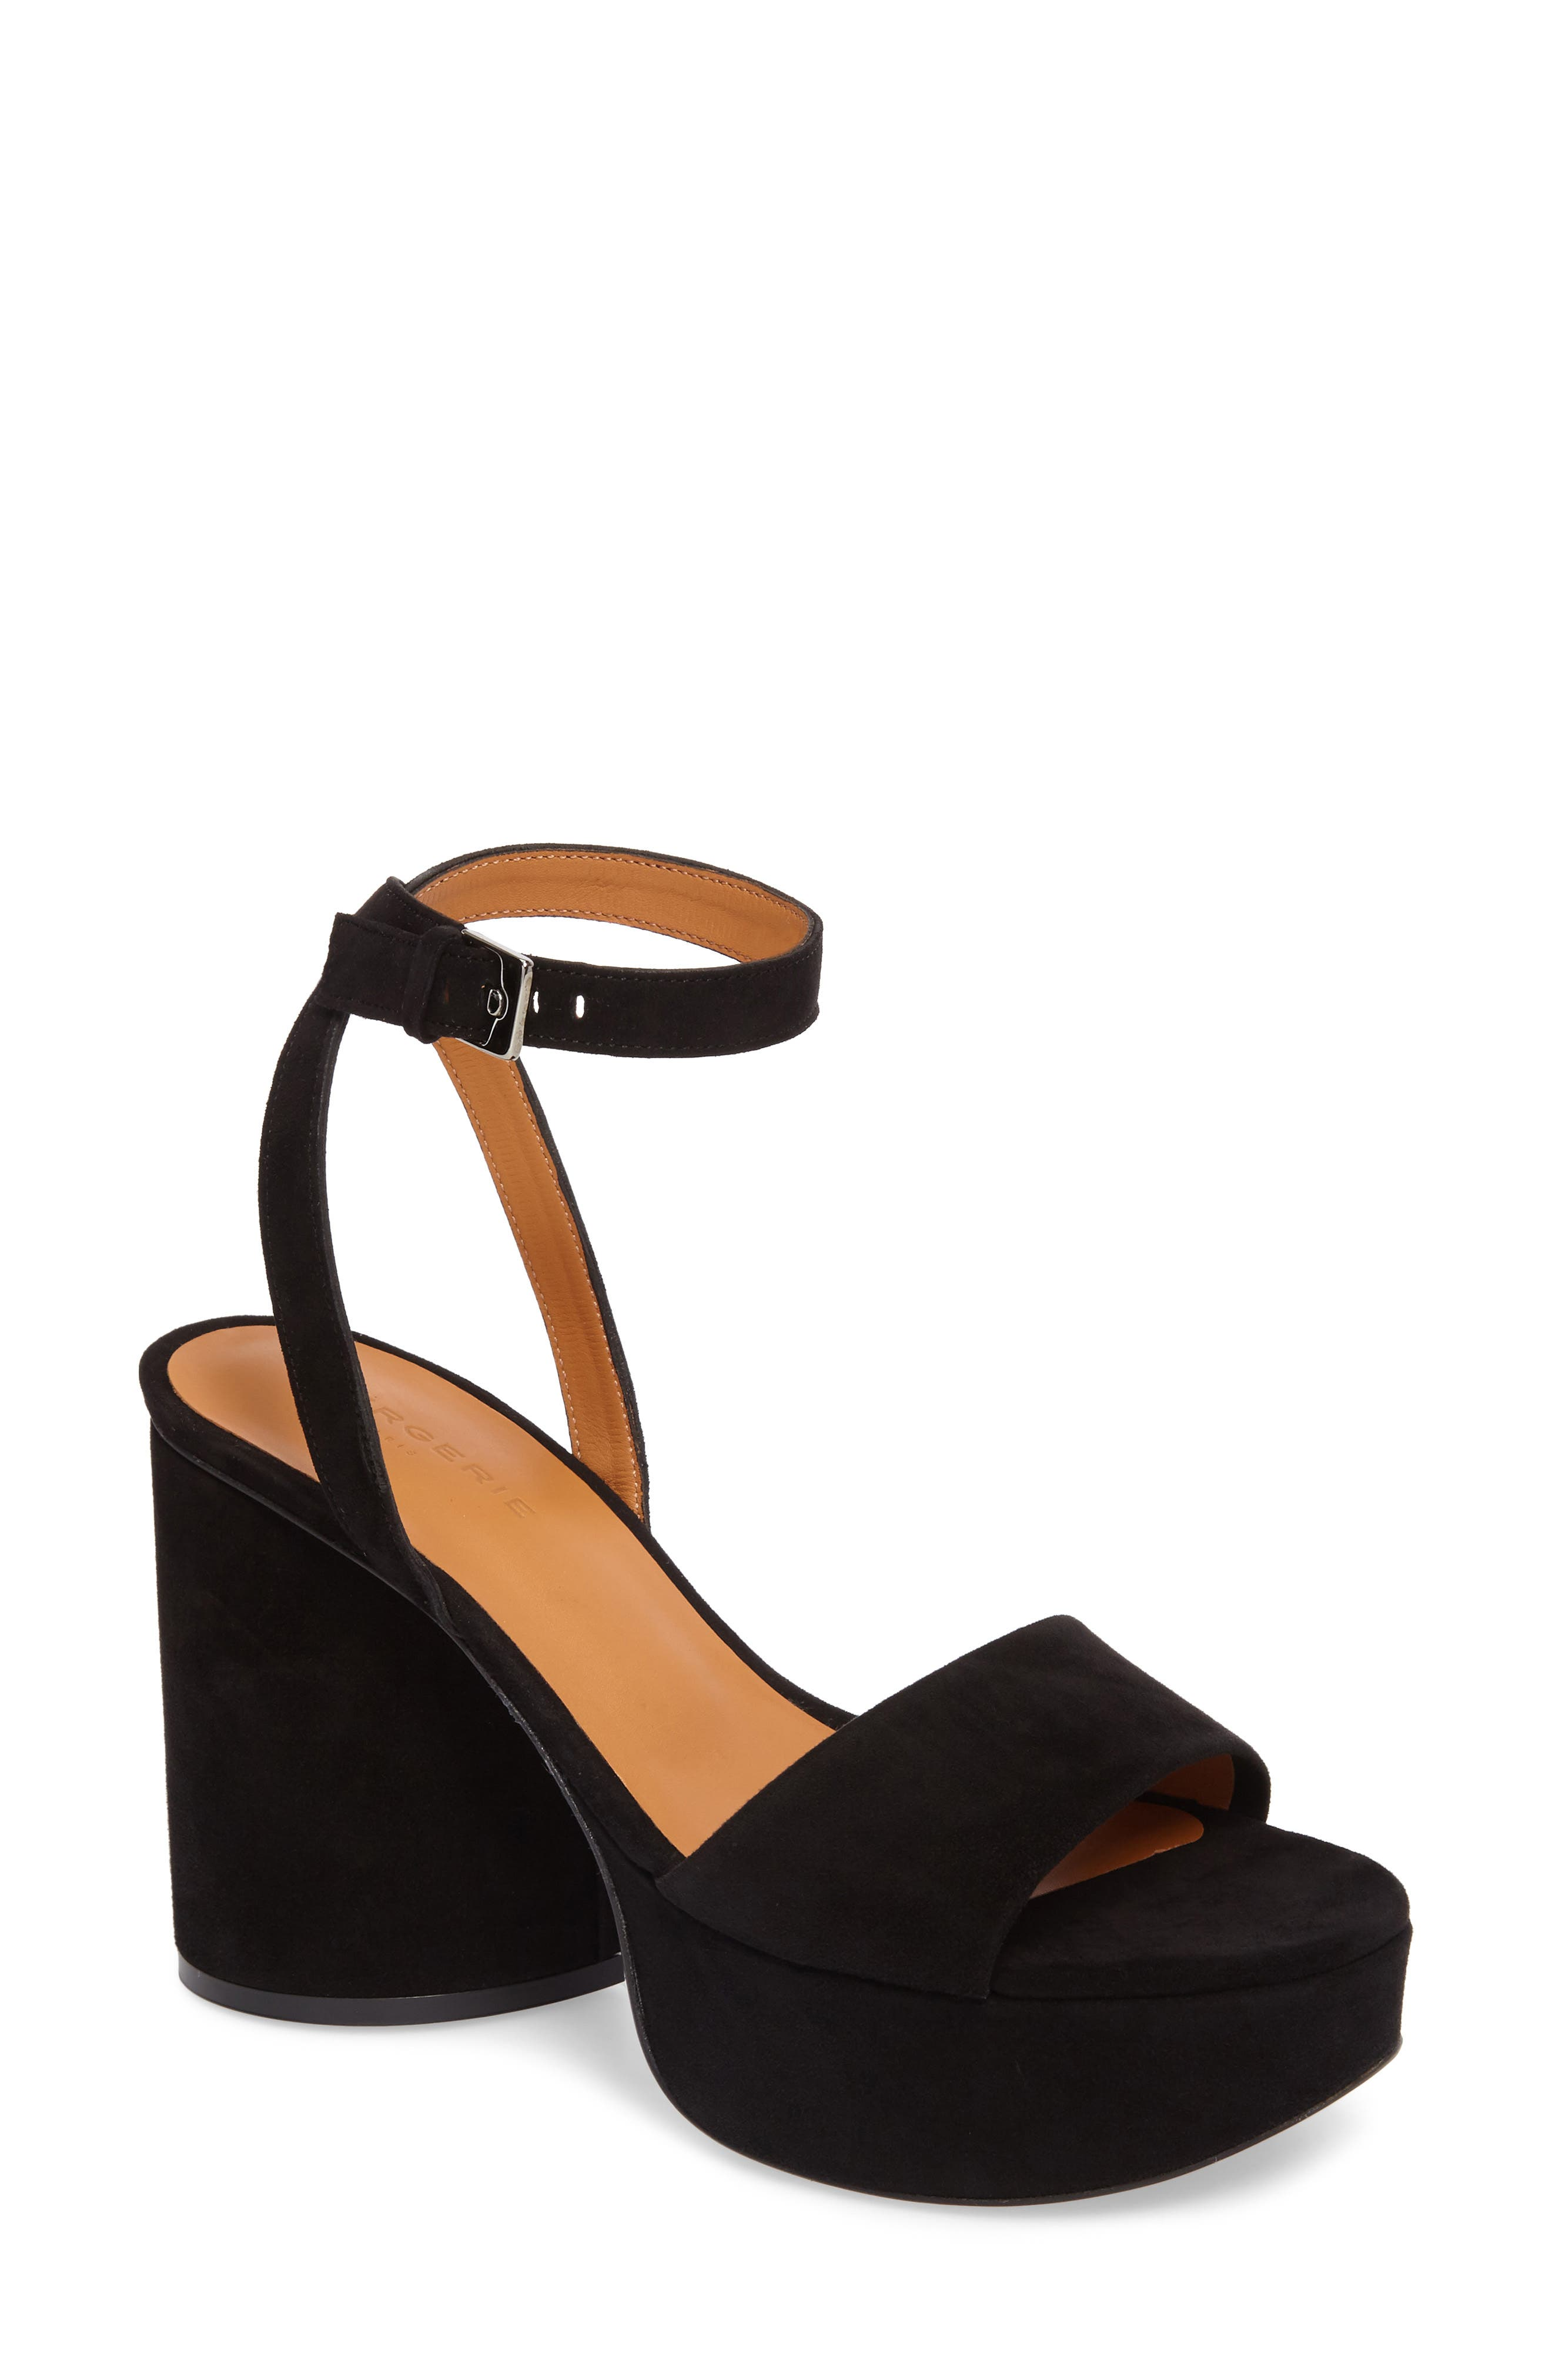 Vionica Platform Ankle Strap Sandal,                         Main,                         color, Black